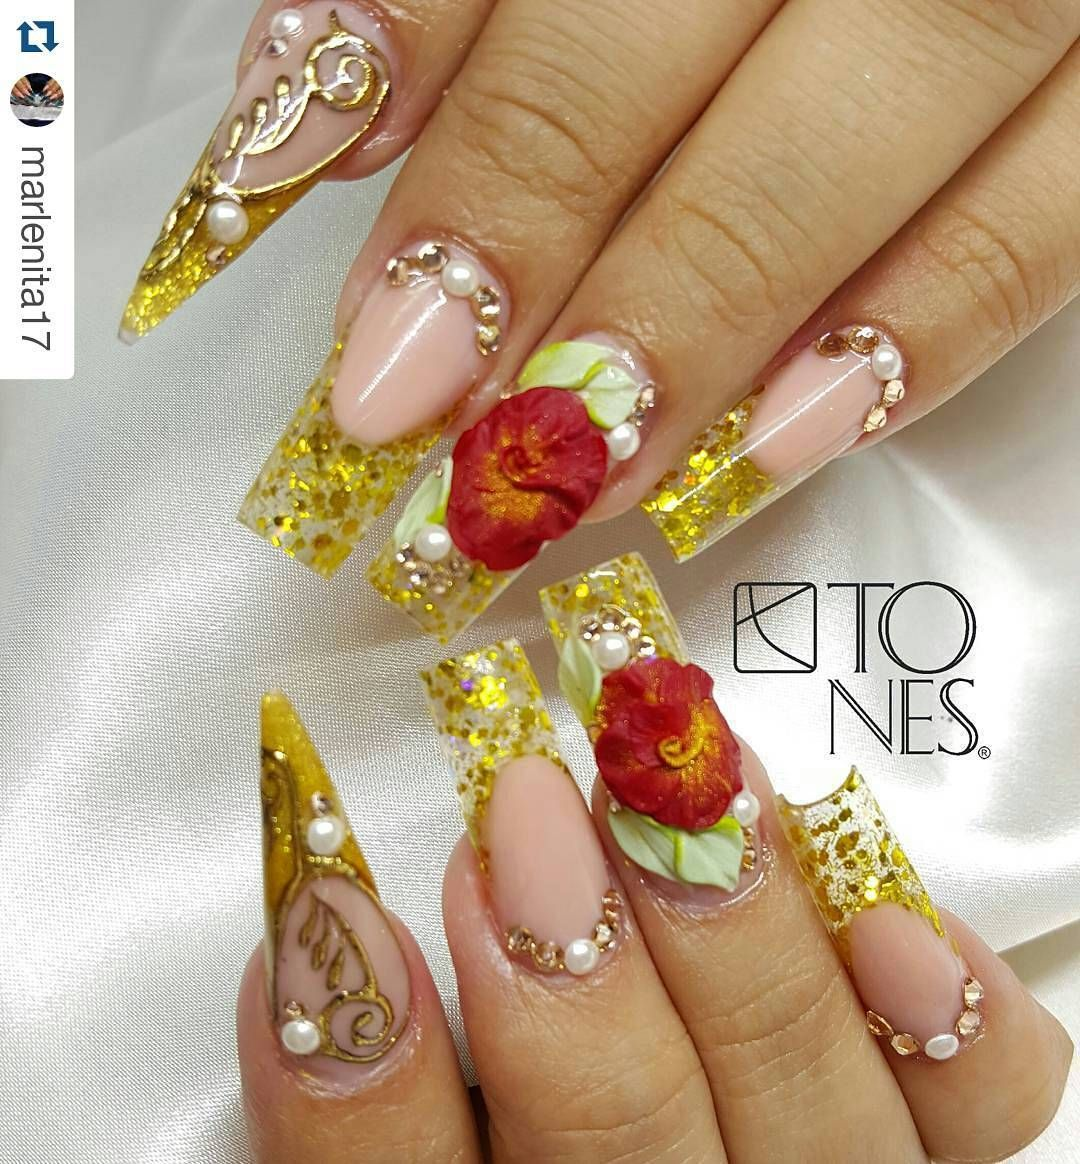 Pin by anna voziyan on Ногти | Pinterest | Nail trends